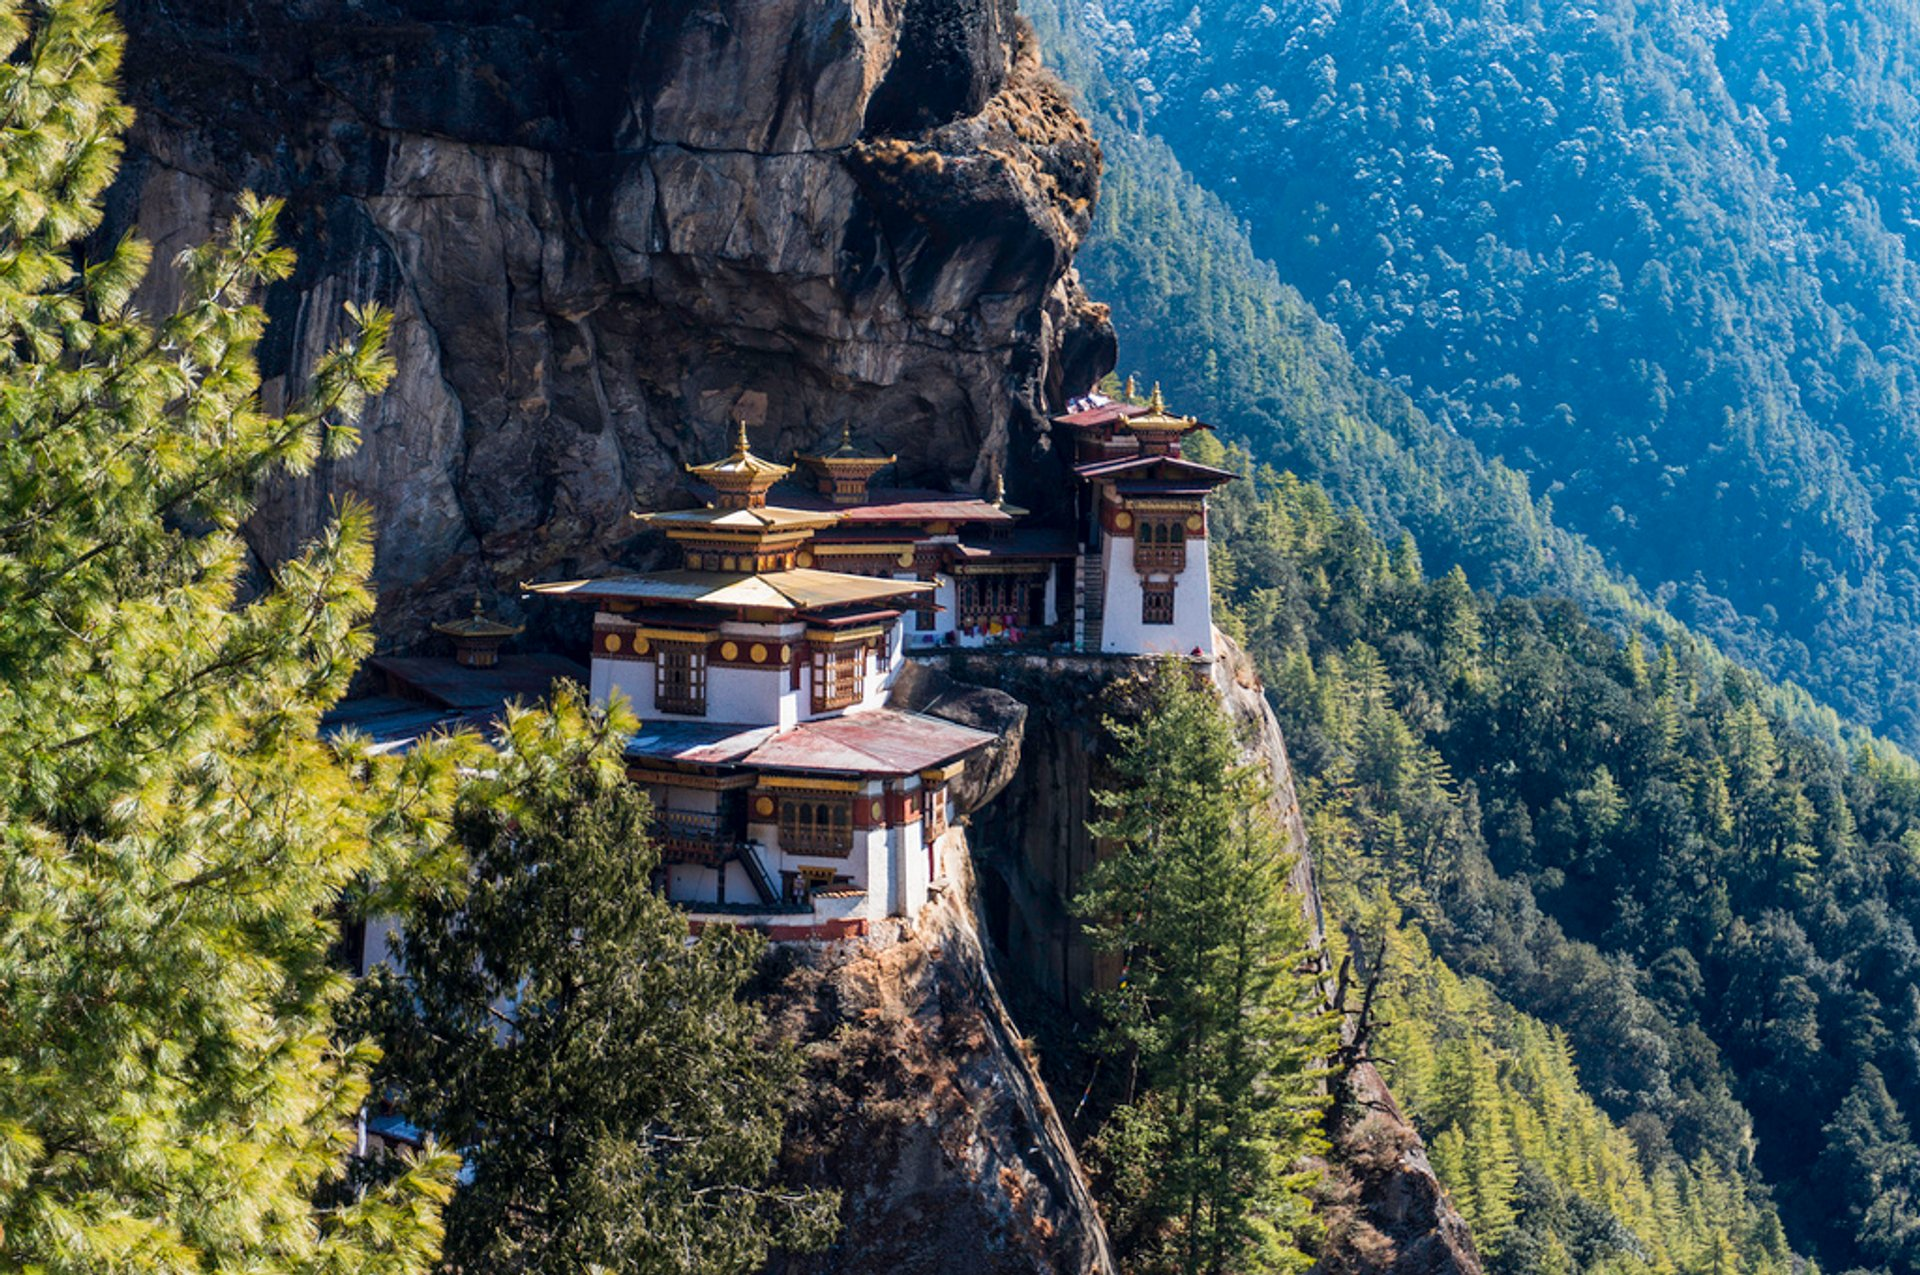 Tiger's Nest (Paro Taktsang) in Bhutan 2020 - Best Time